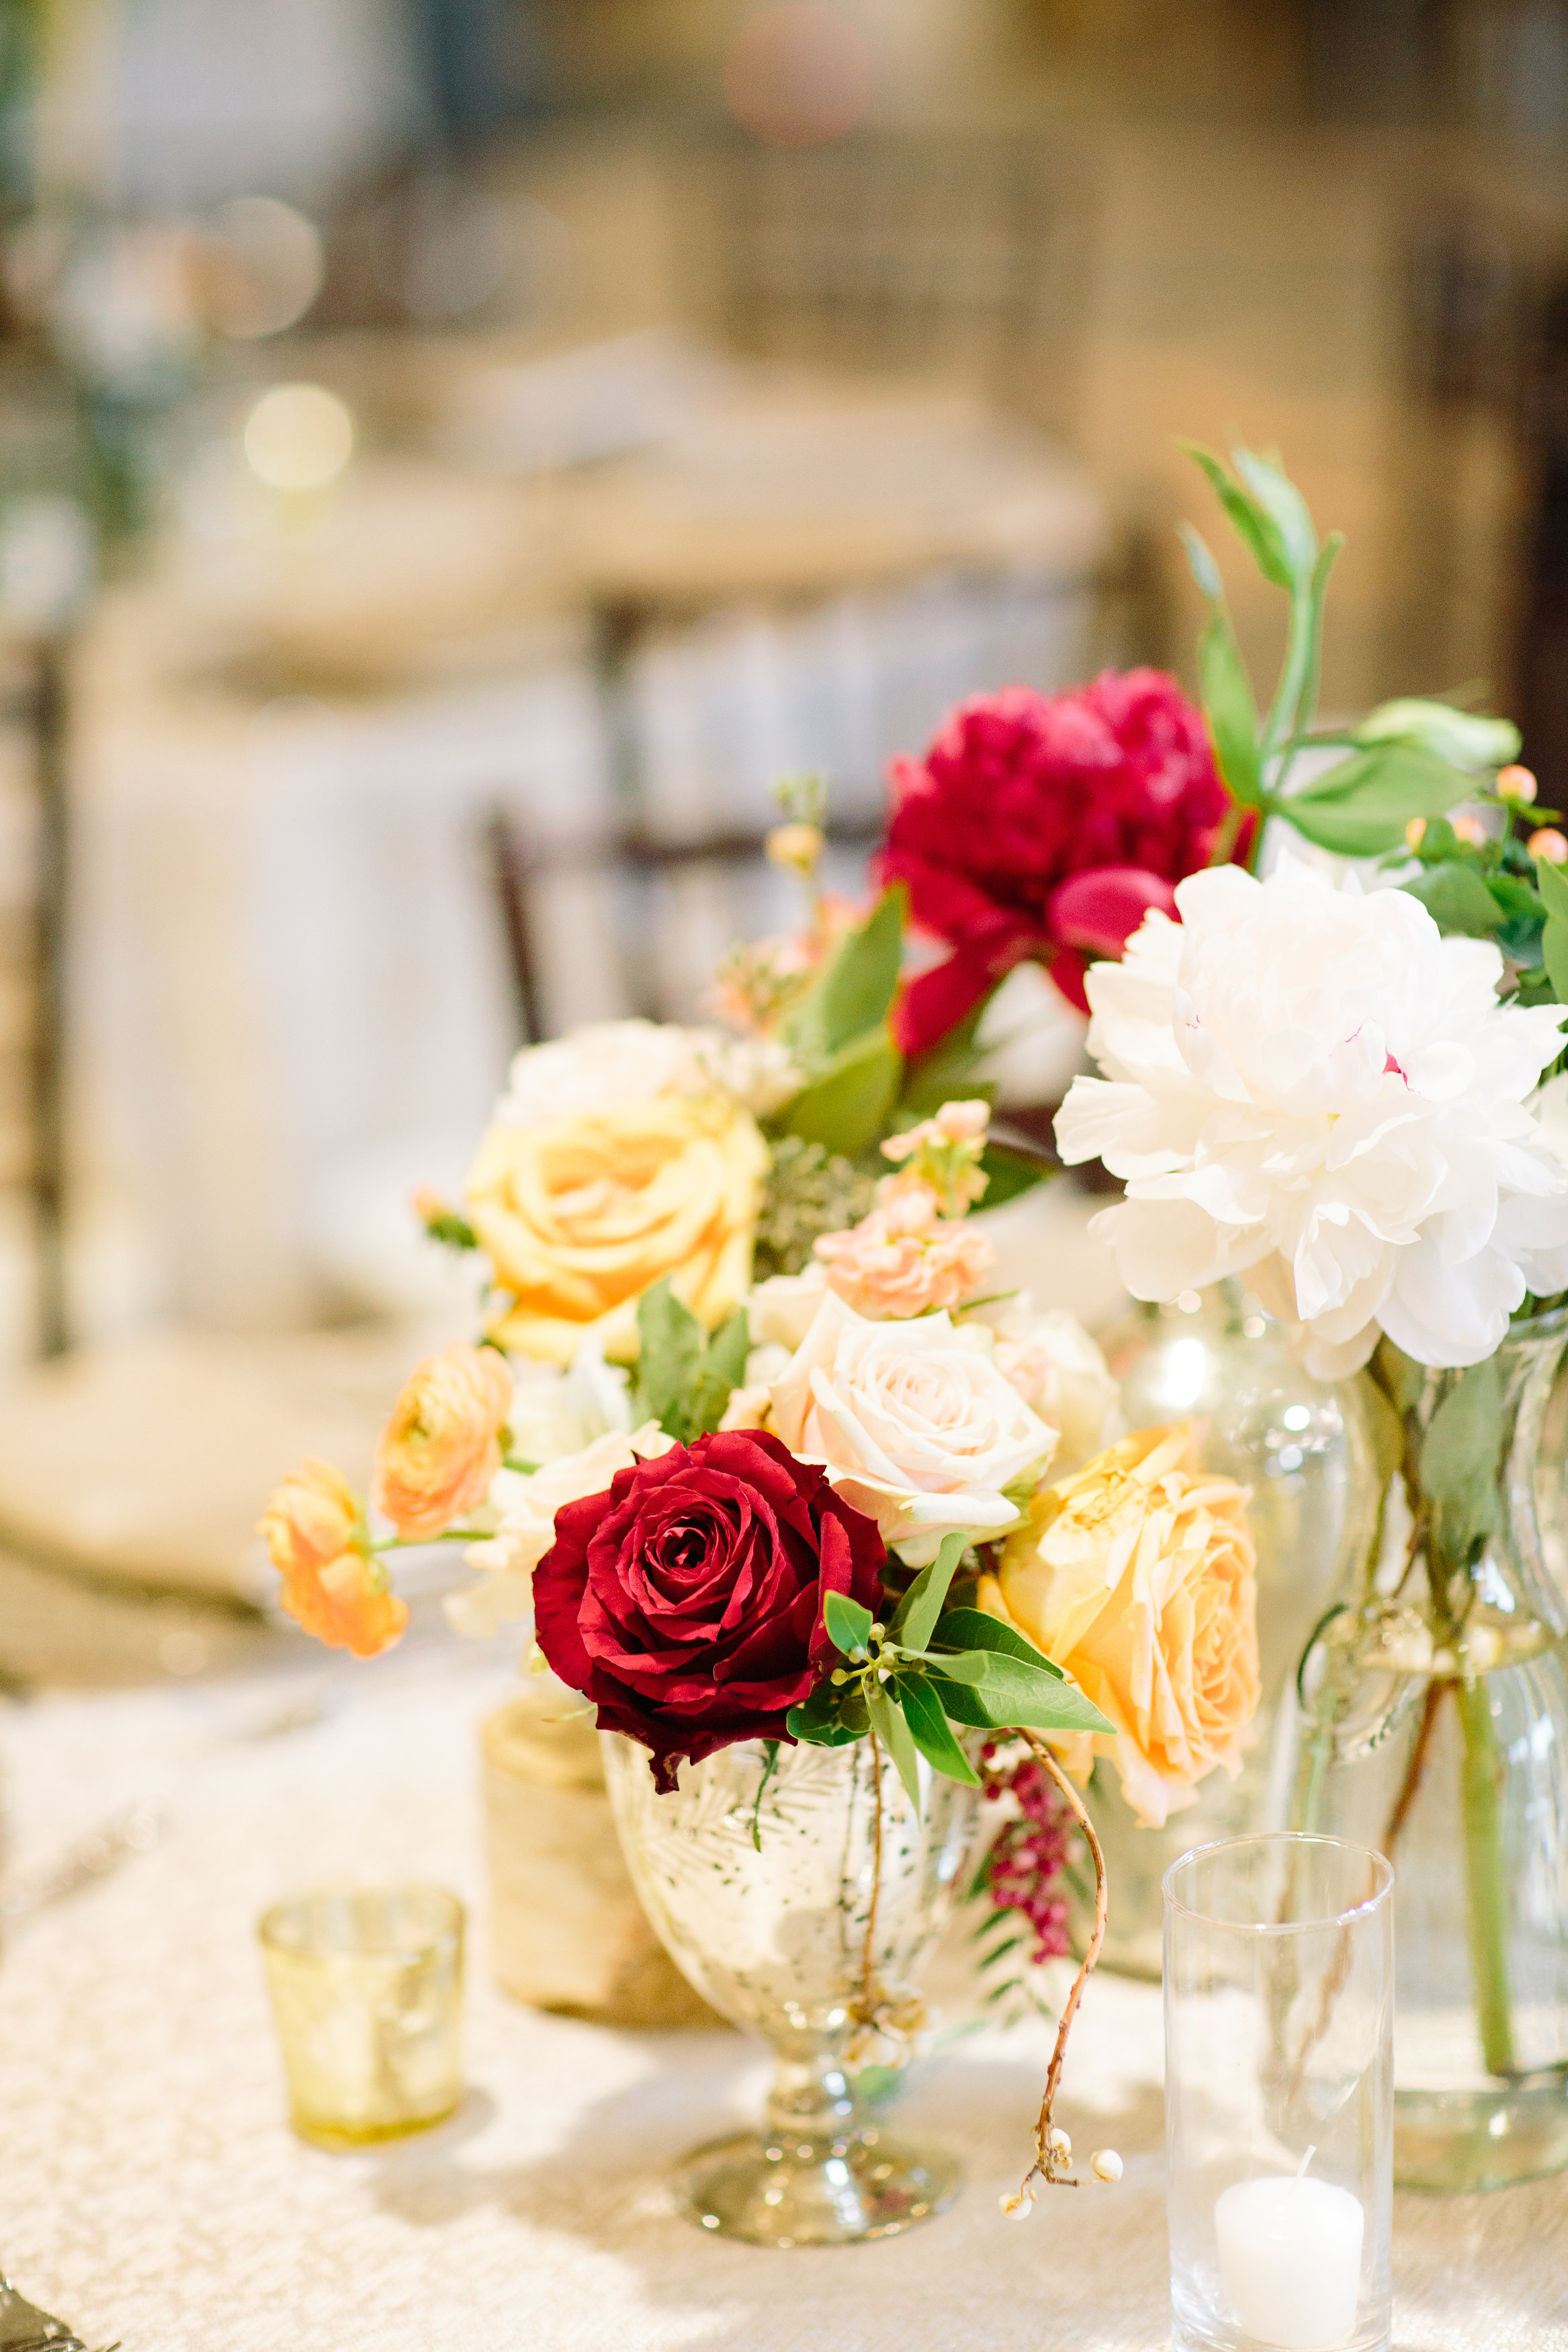 Heidi & Holt's Rustic Chic Wedding - Branching Out Events